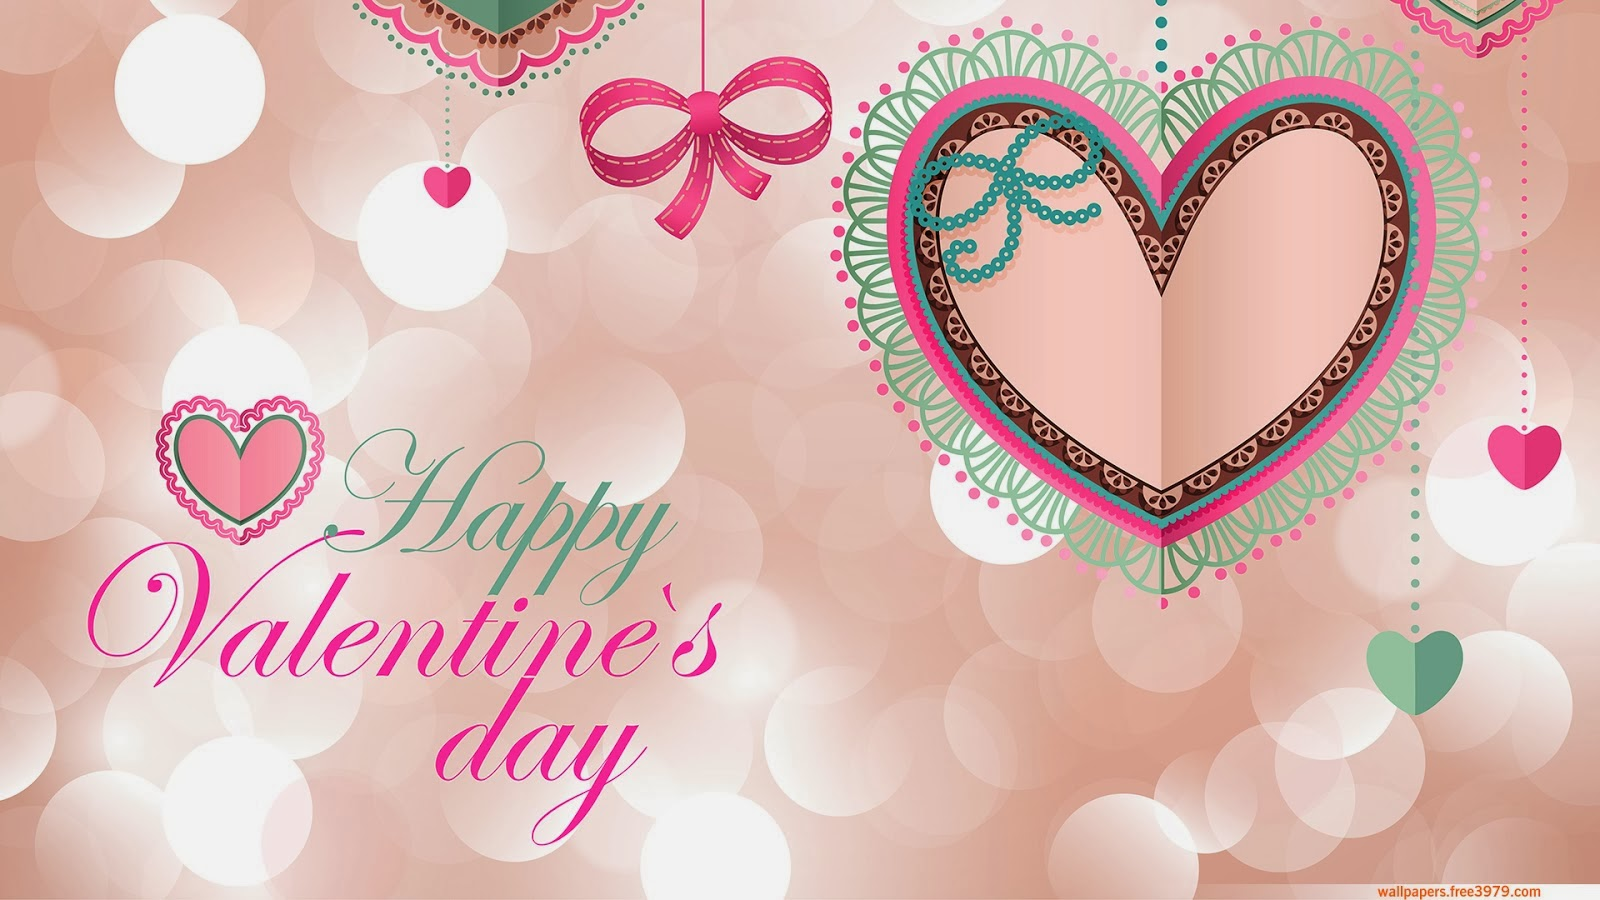 25 Romantic Valentines Day Wallpapers 1600x900